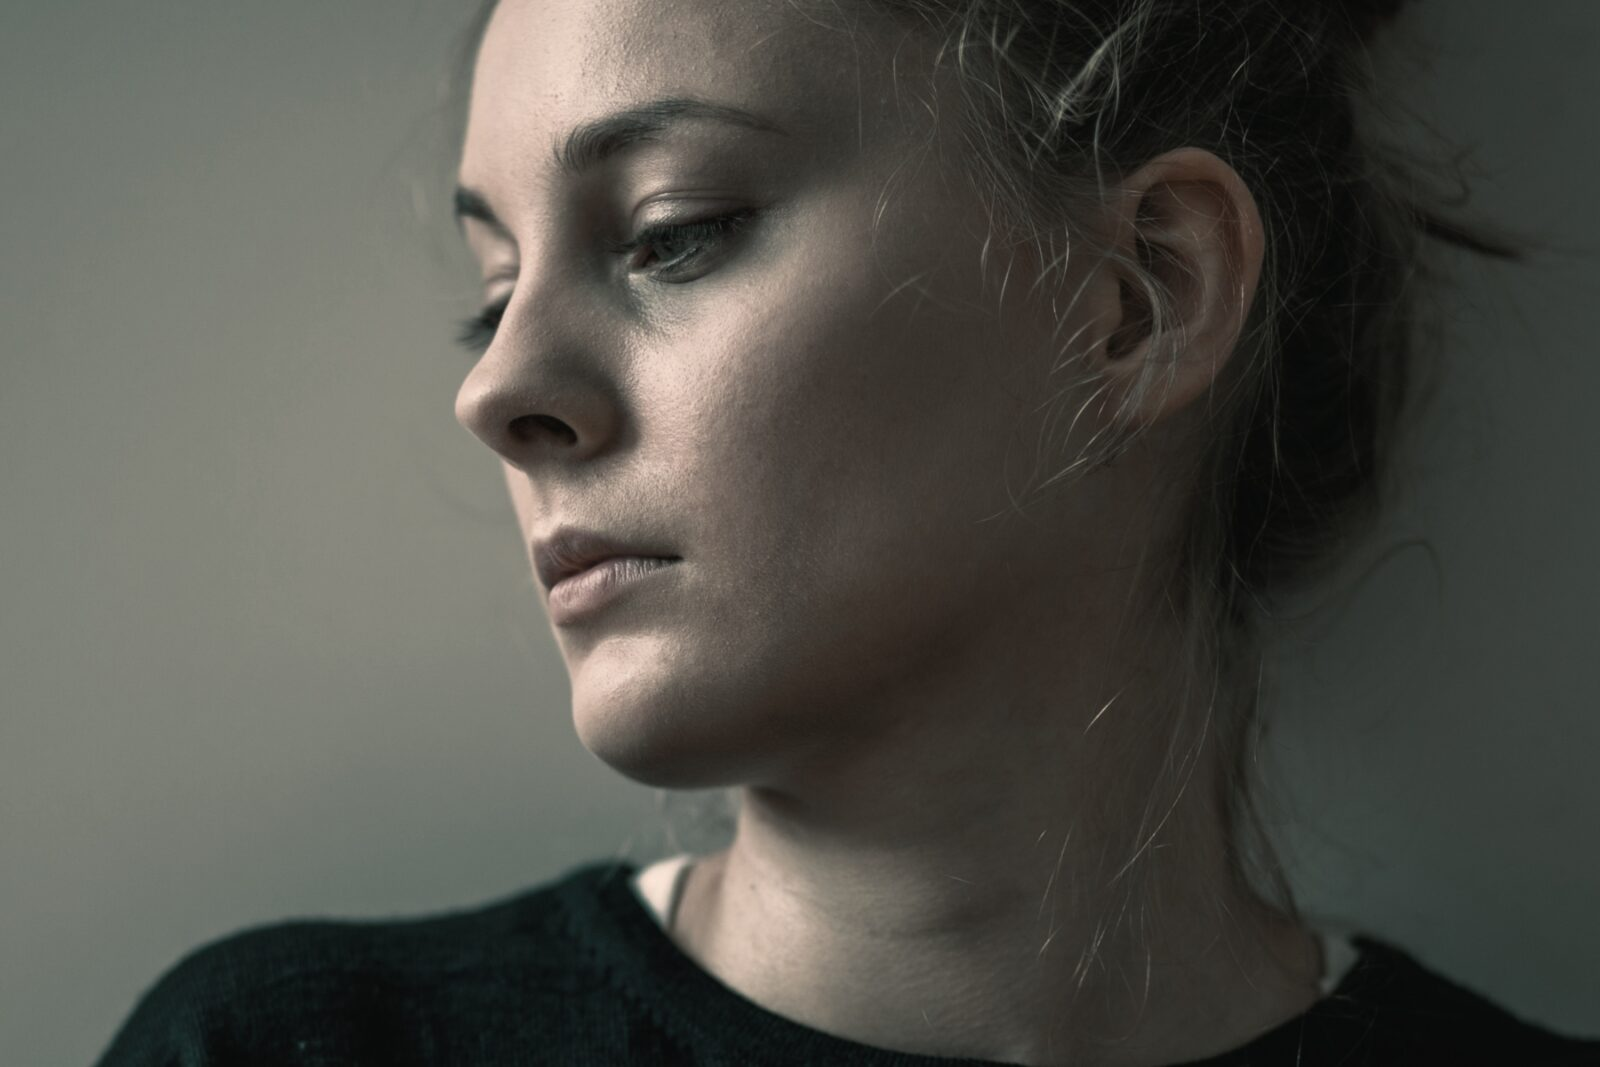 Young woman with bipolar disorder